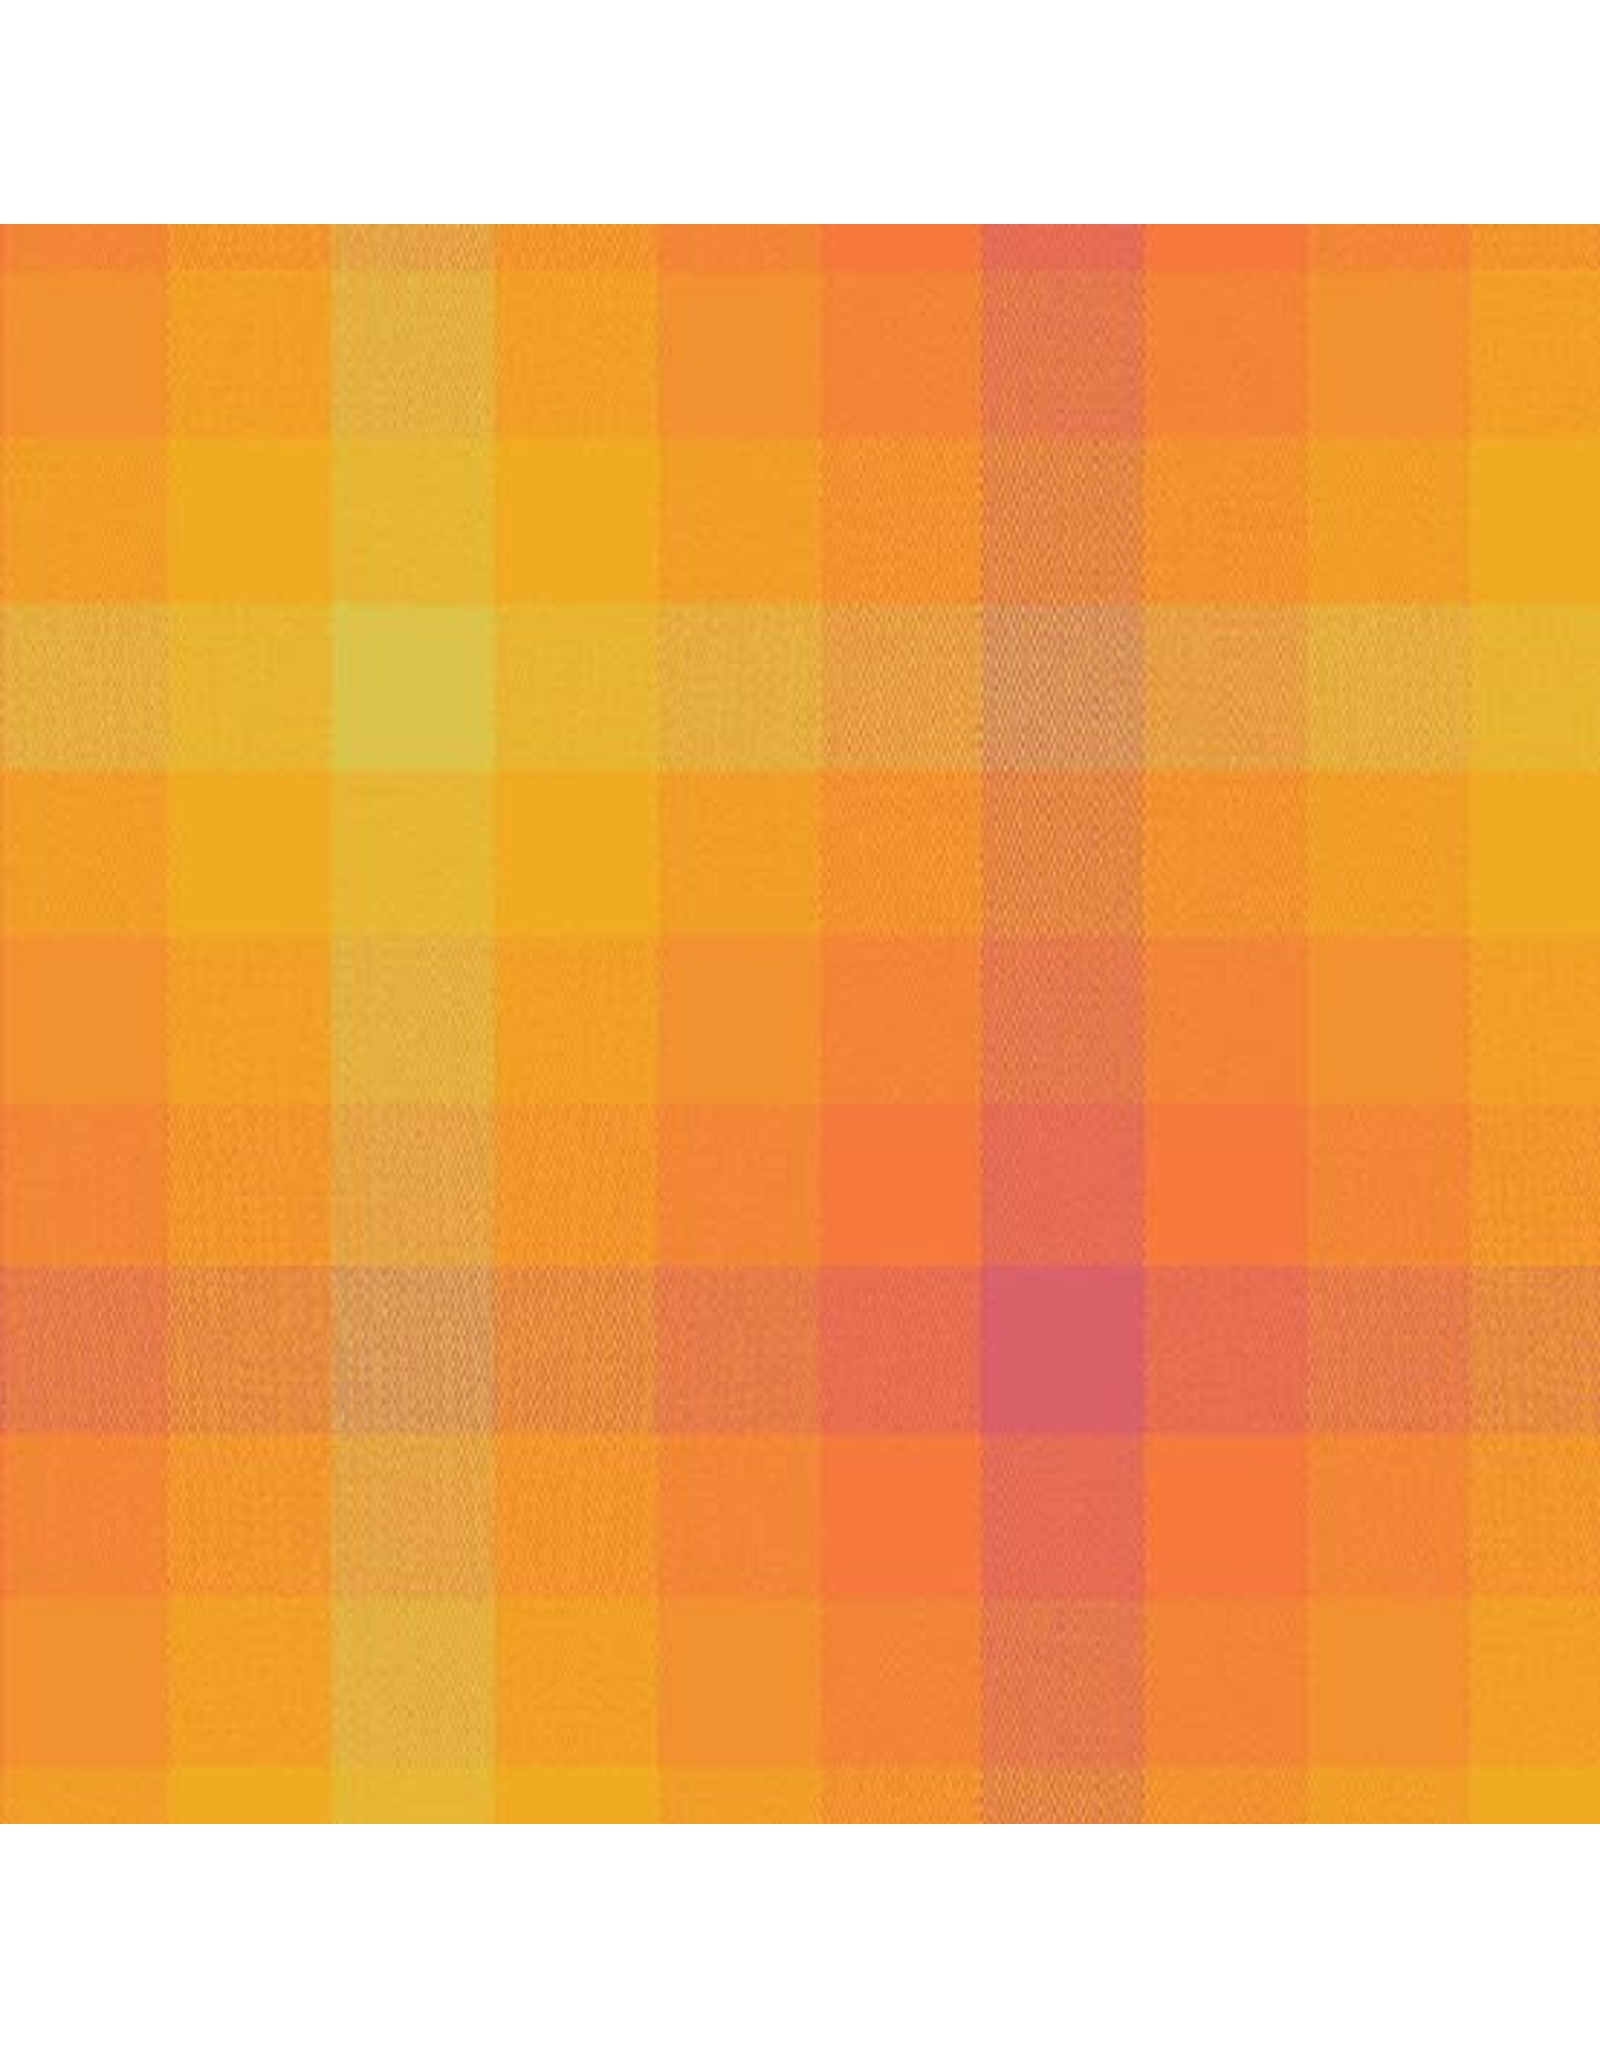 Alison Glass Kaleidoscope Stripes and Plaids, Plaid in Marmalade, Fabric Half-Yards